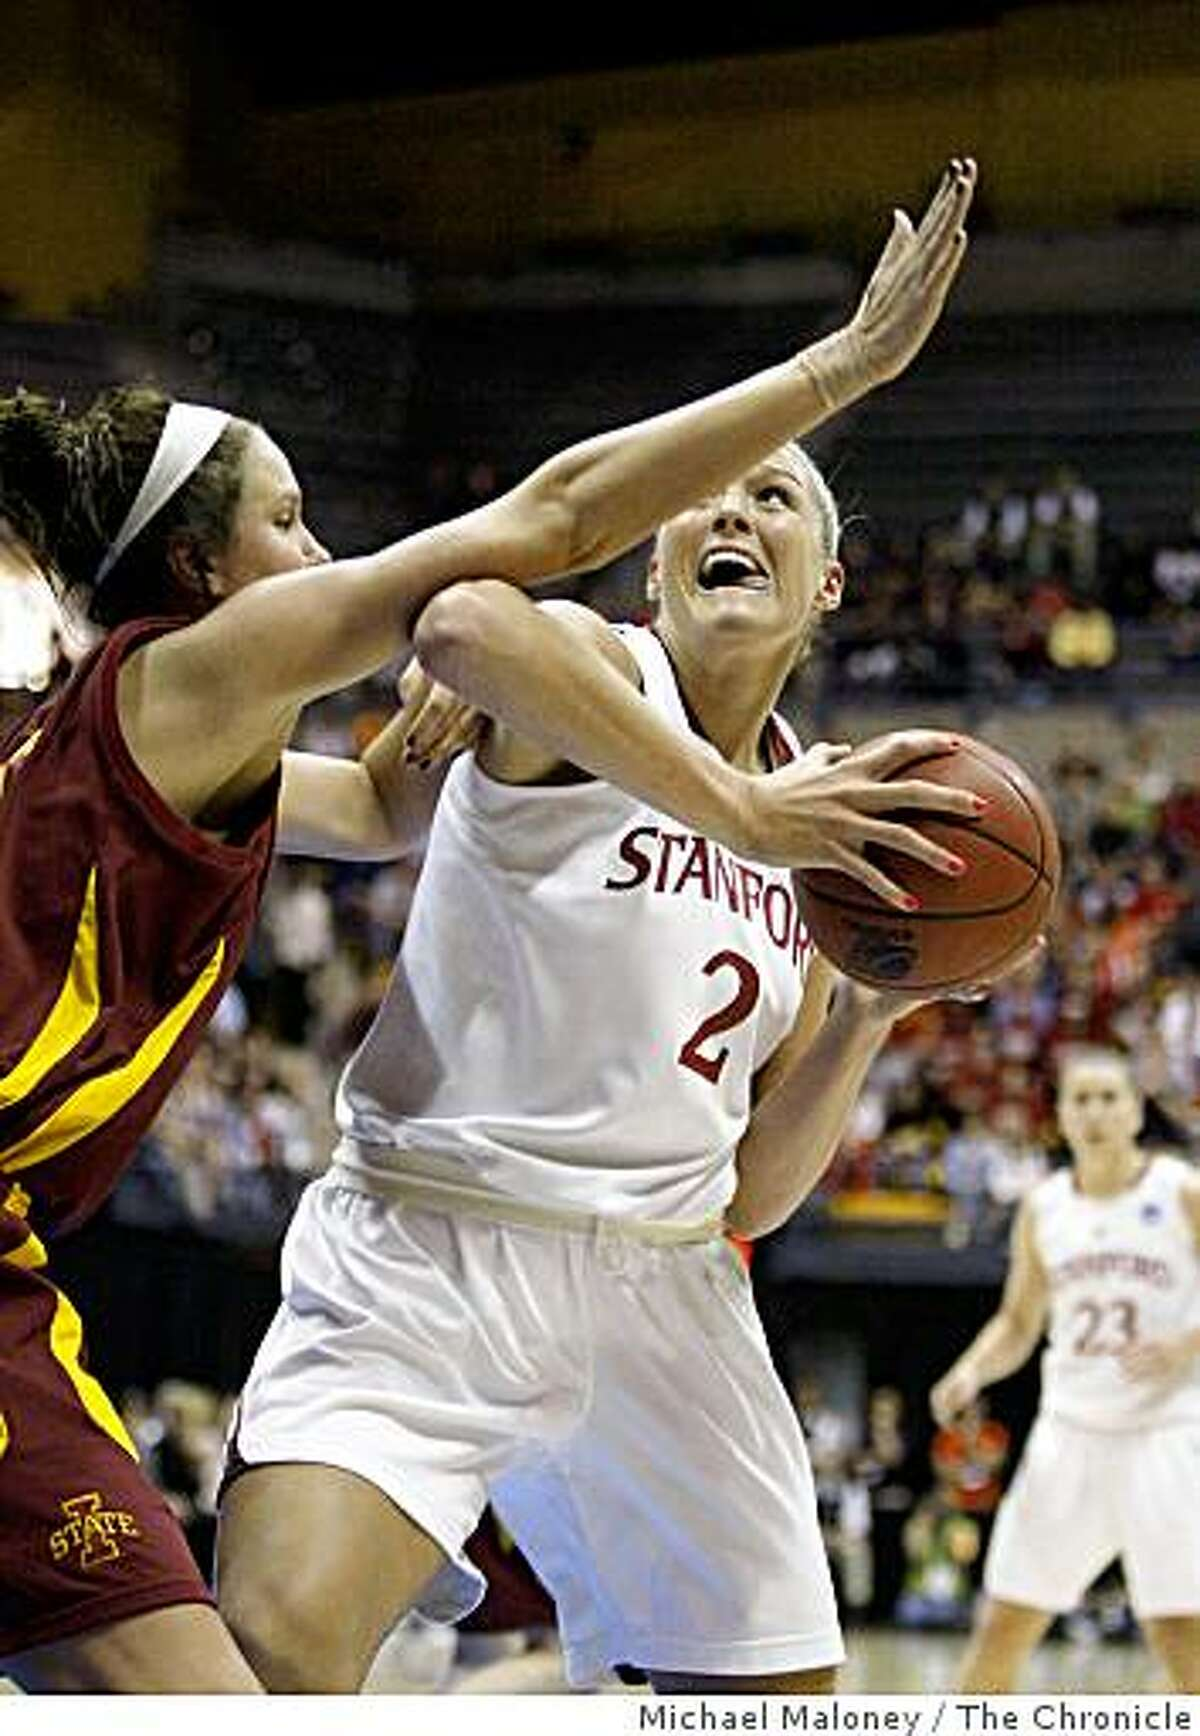 Stanford's Jayne Appel (2) drives to the basket against Iowa State's Michelle Harrison in the 1st half during the 2009 Women's NCAA Division 1 Regional Final between Stanford and Iowa State at Haas Pavilion in Berkeley, Calif., on March 30, 2009. Stanford won 74-53.